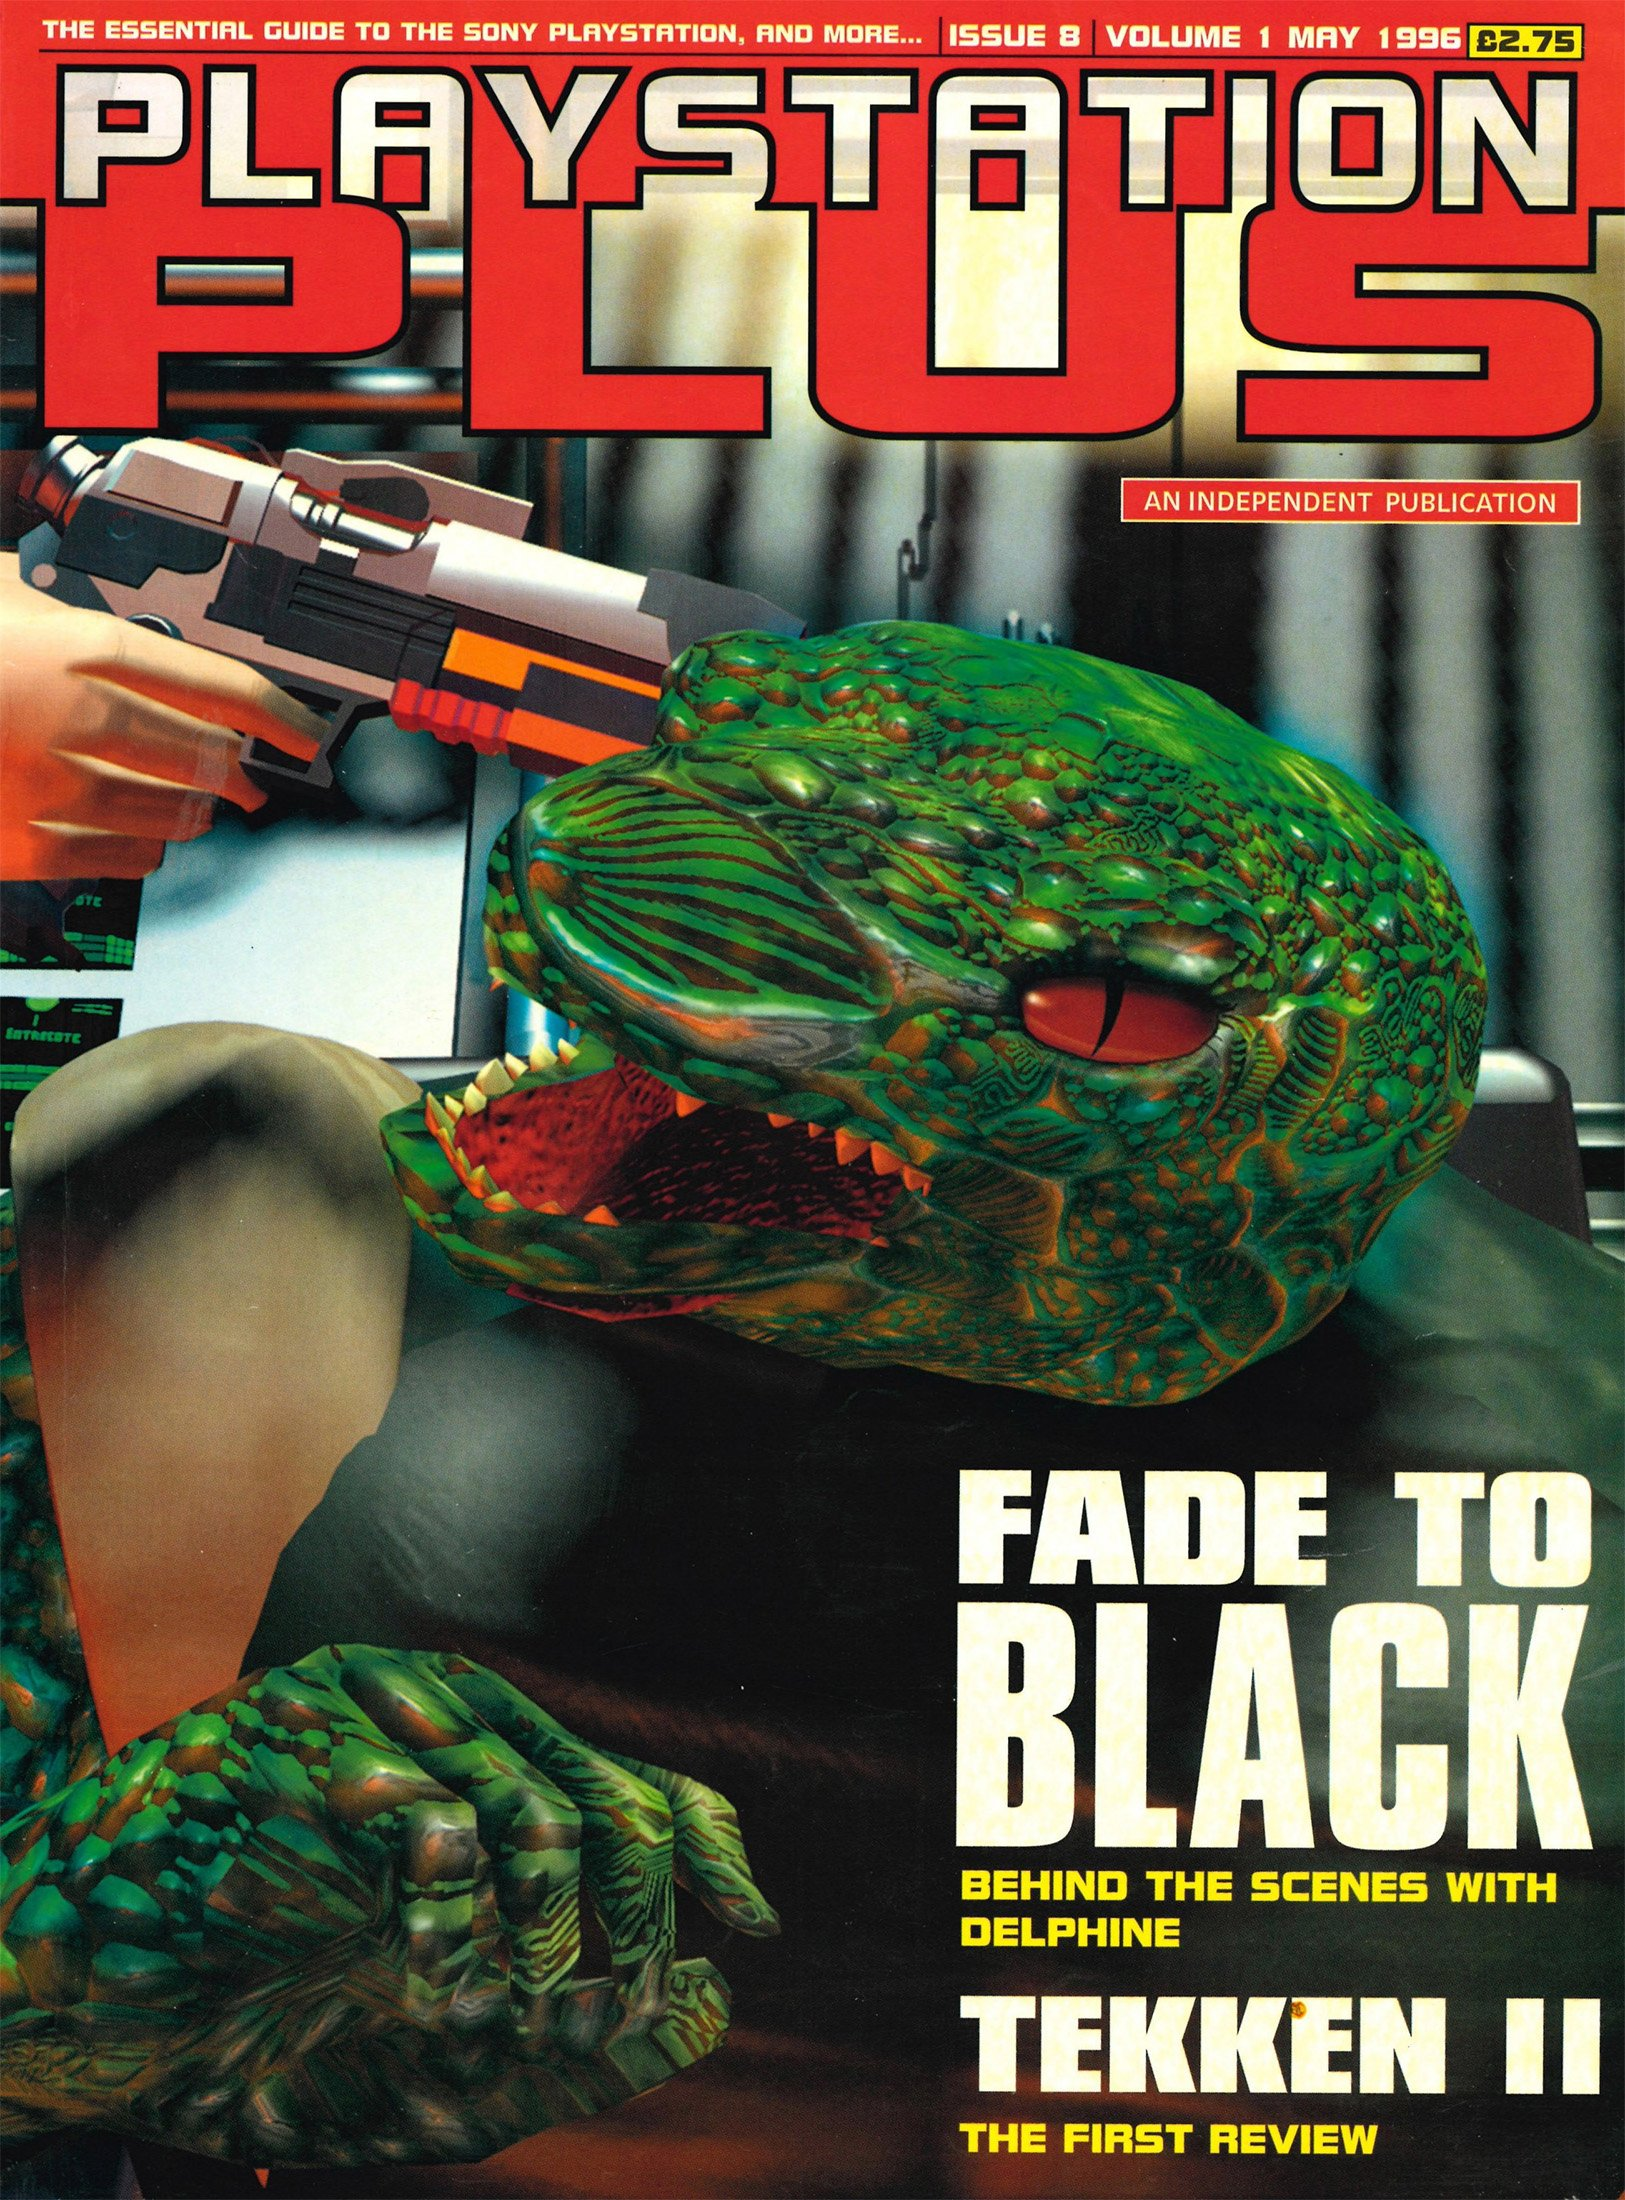 Playstation Plus Issue 008 (May 1996)